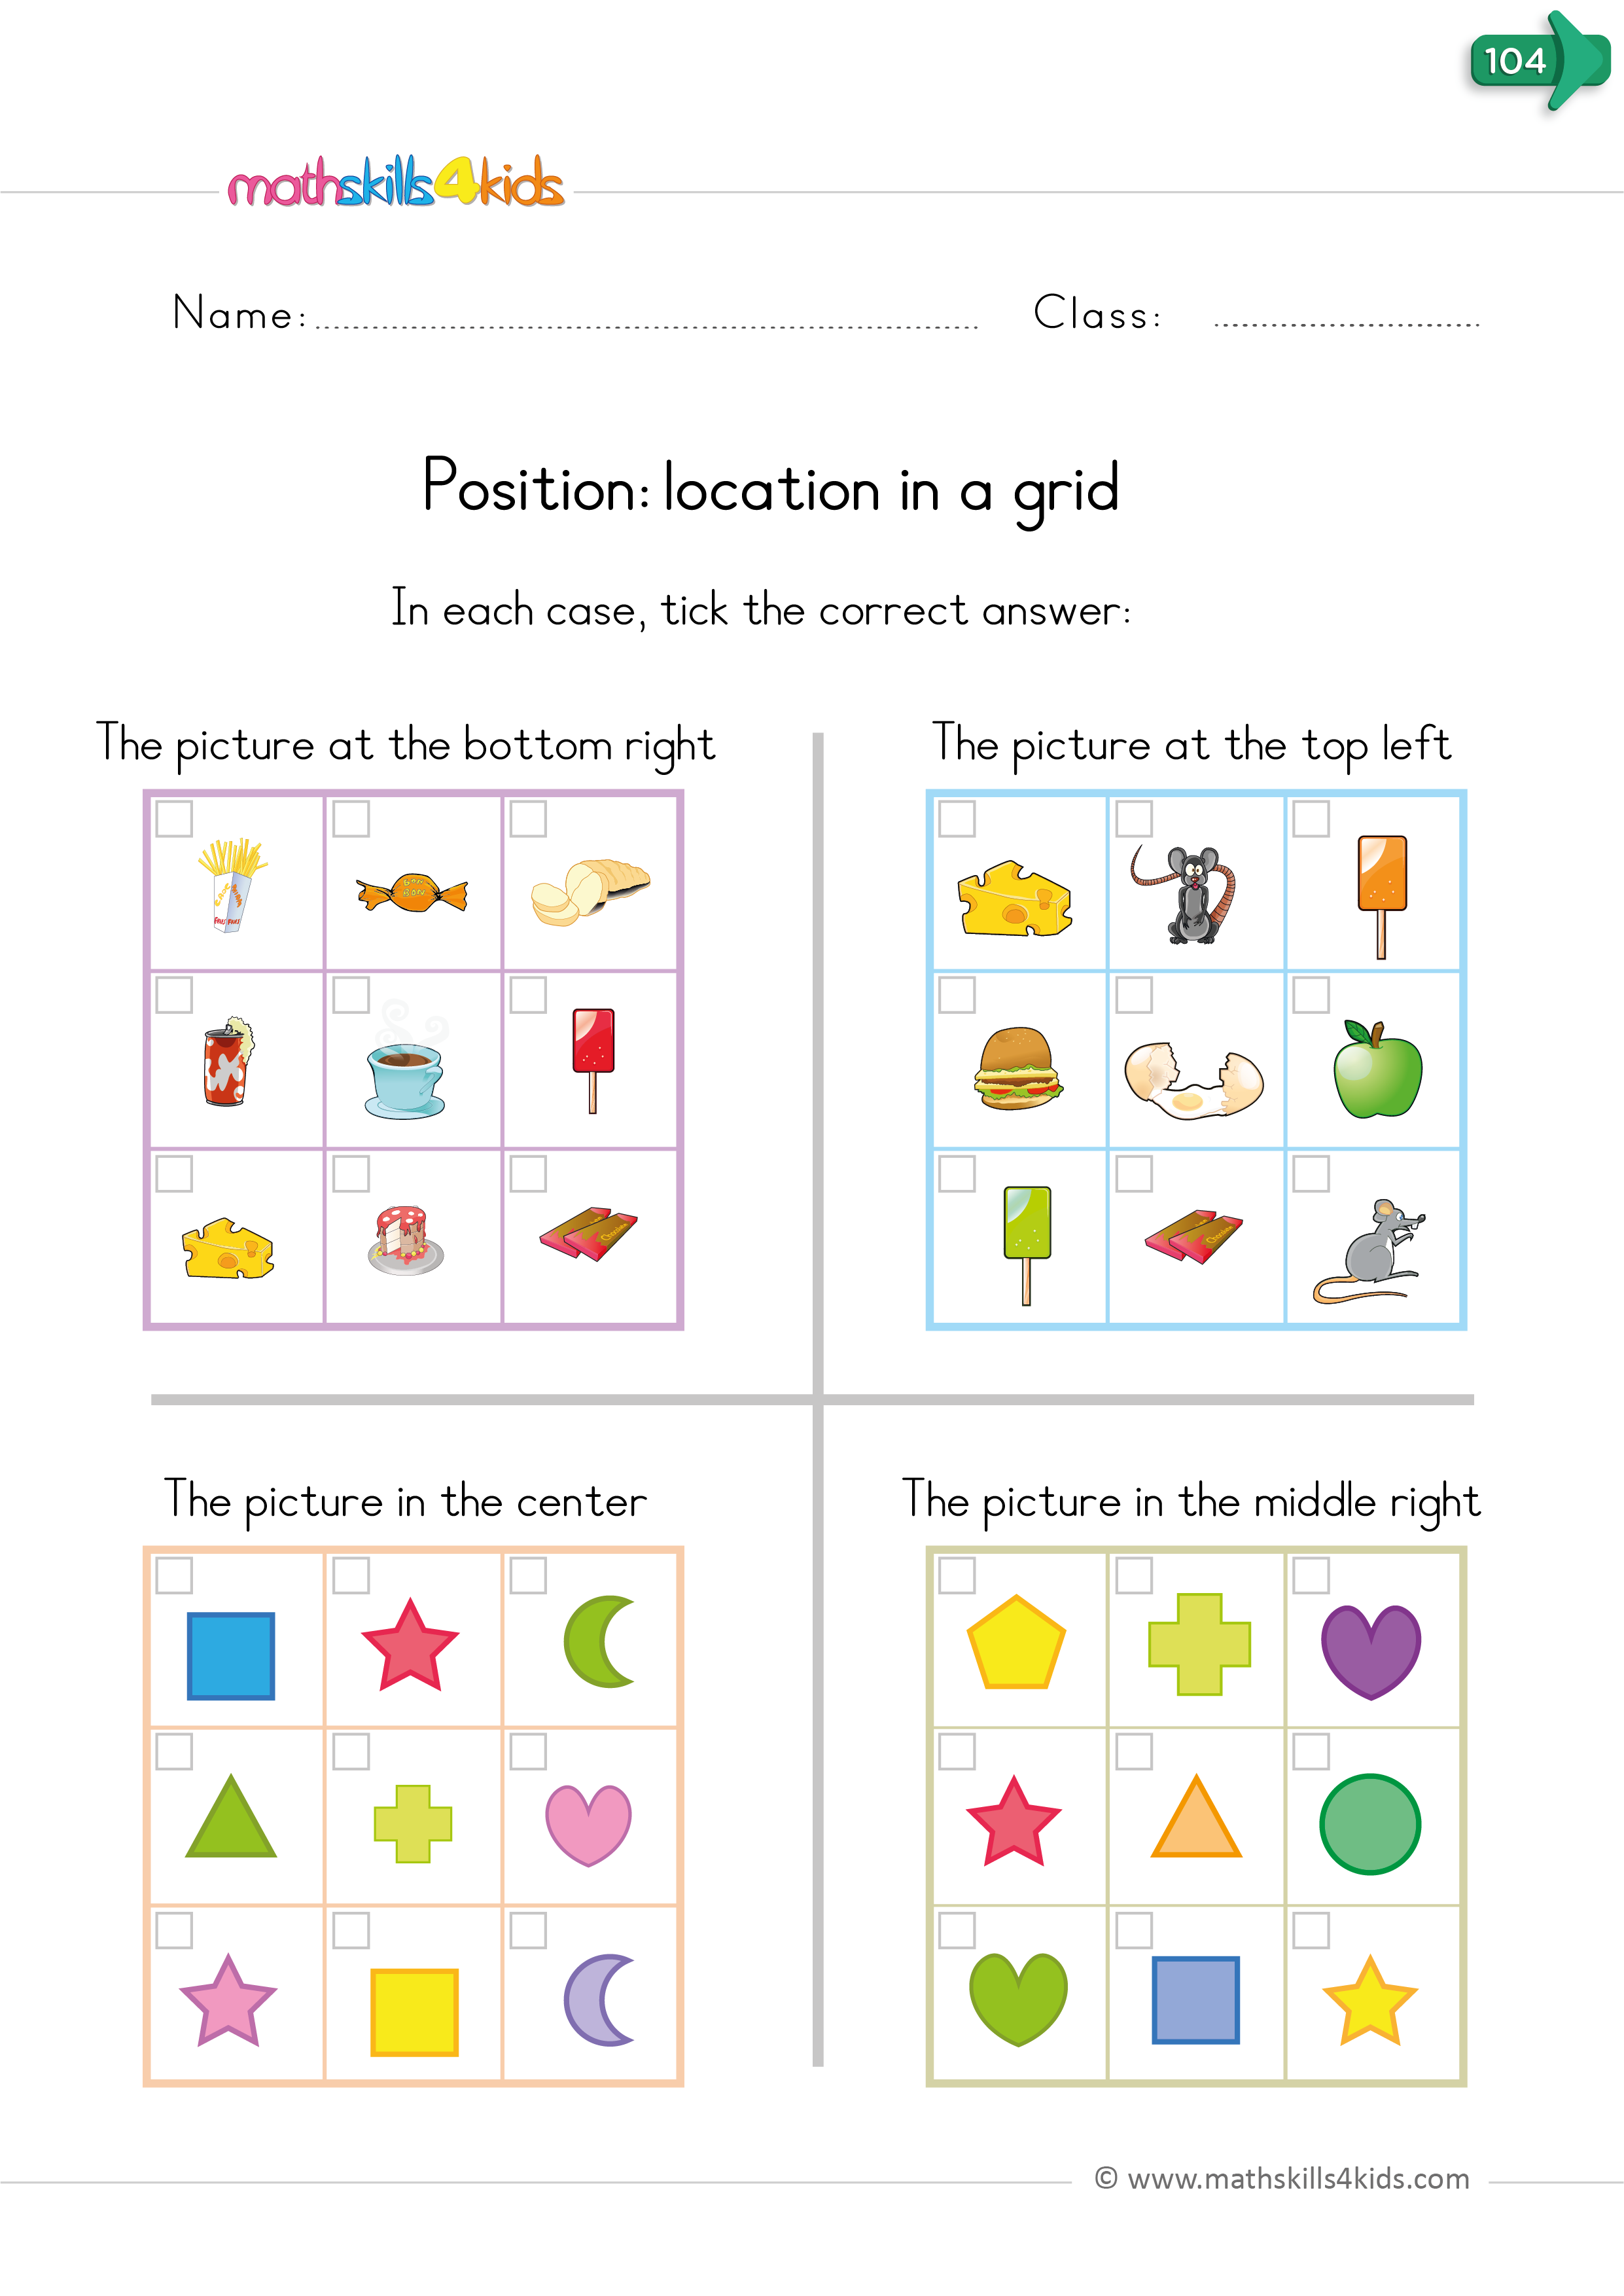 kindergarten math worksheets - positional words grid location top-right, bottom center, etc.